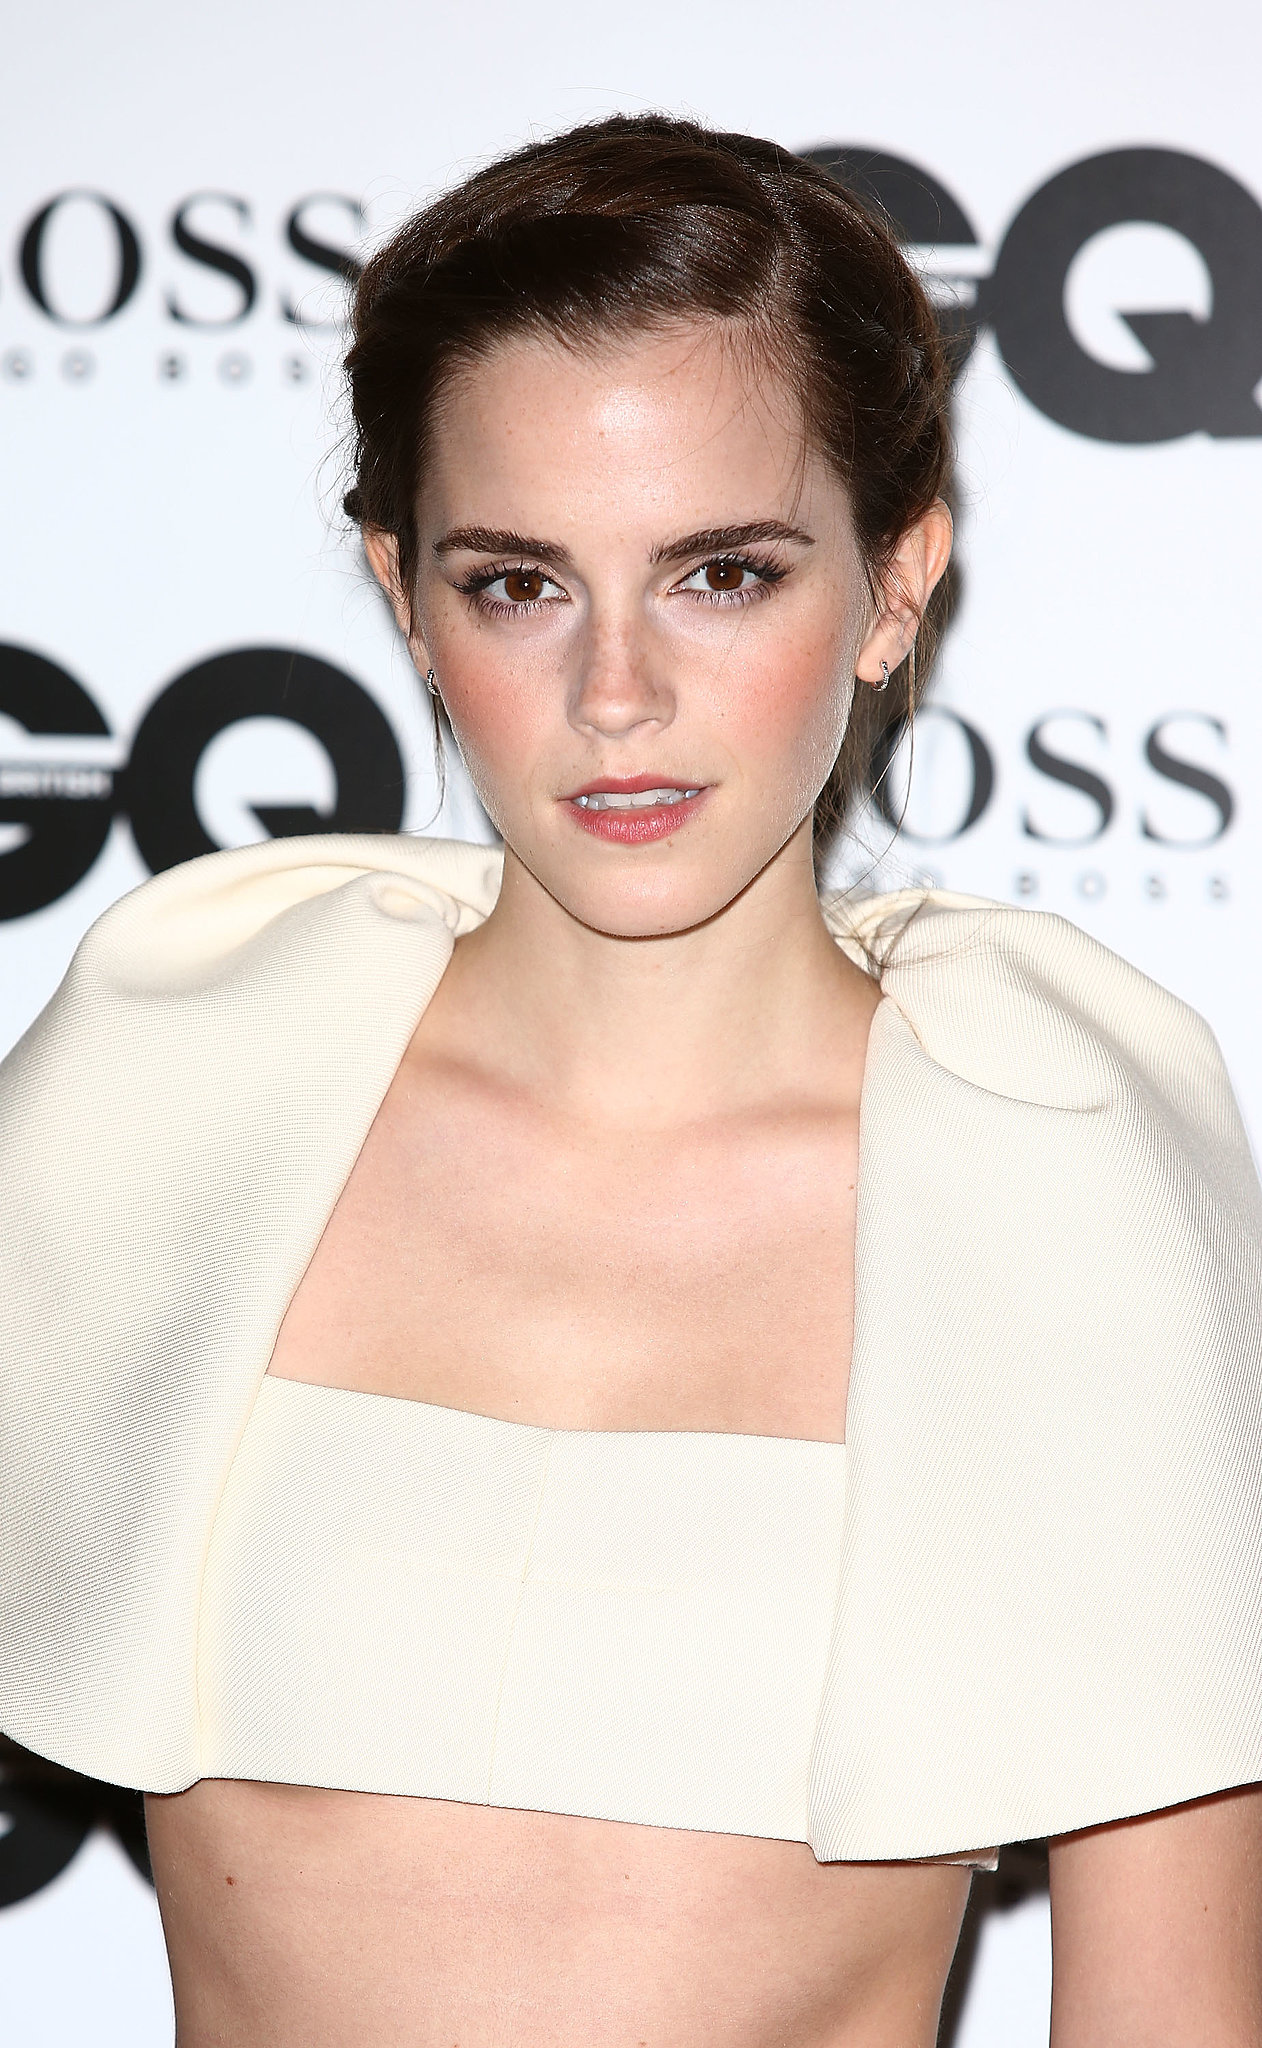 Emma Watson Brings the '90s Back With a High-Fashion Crop Top